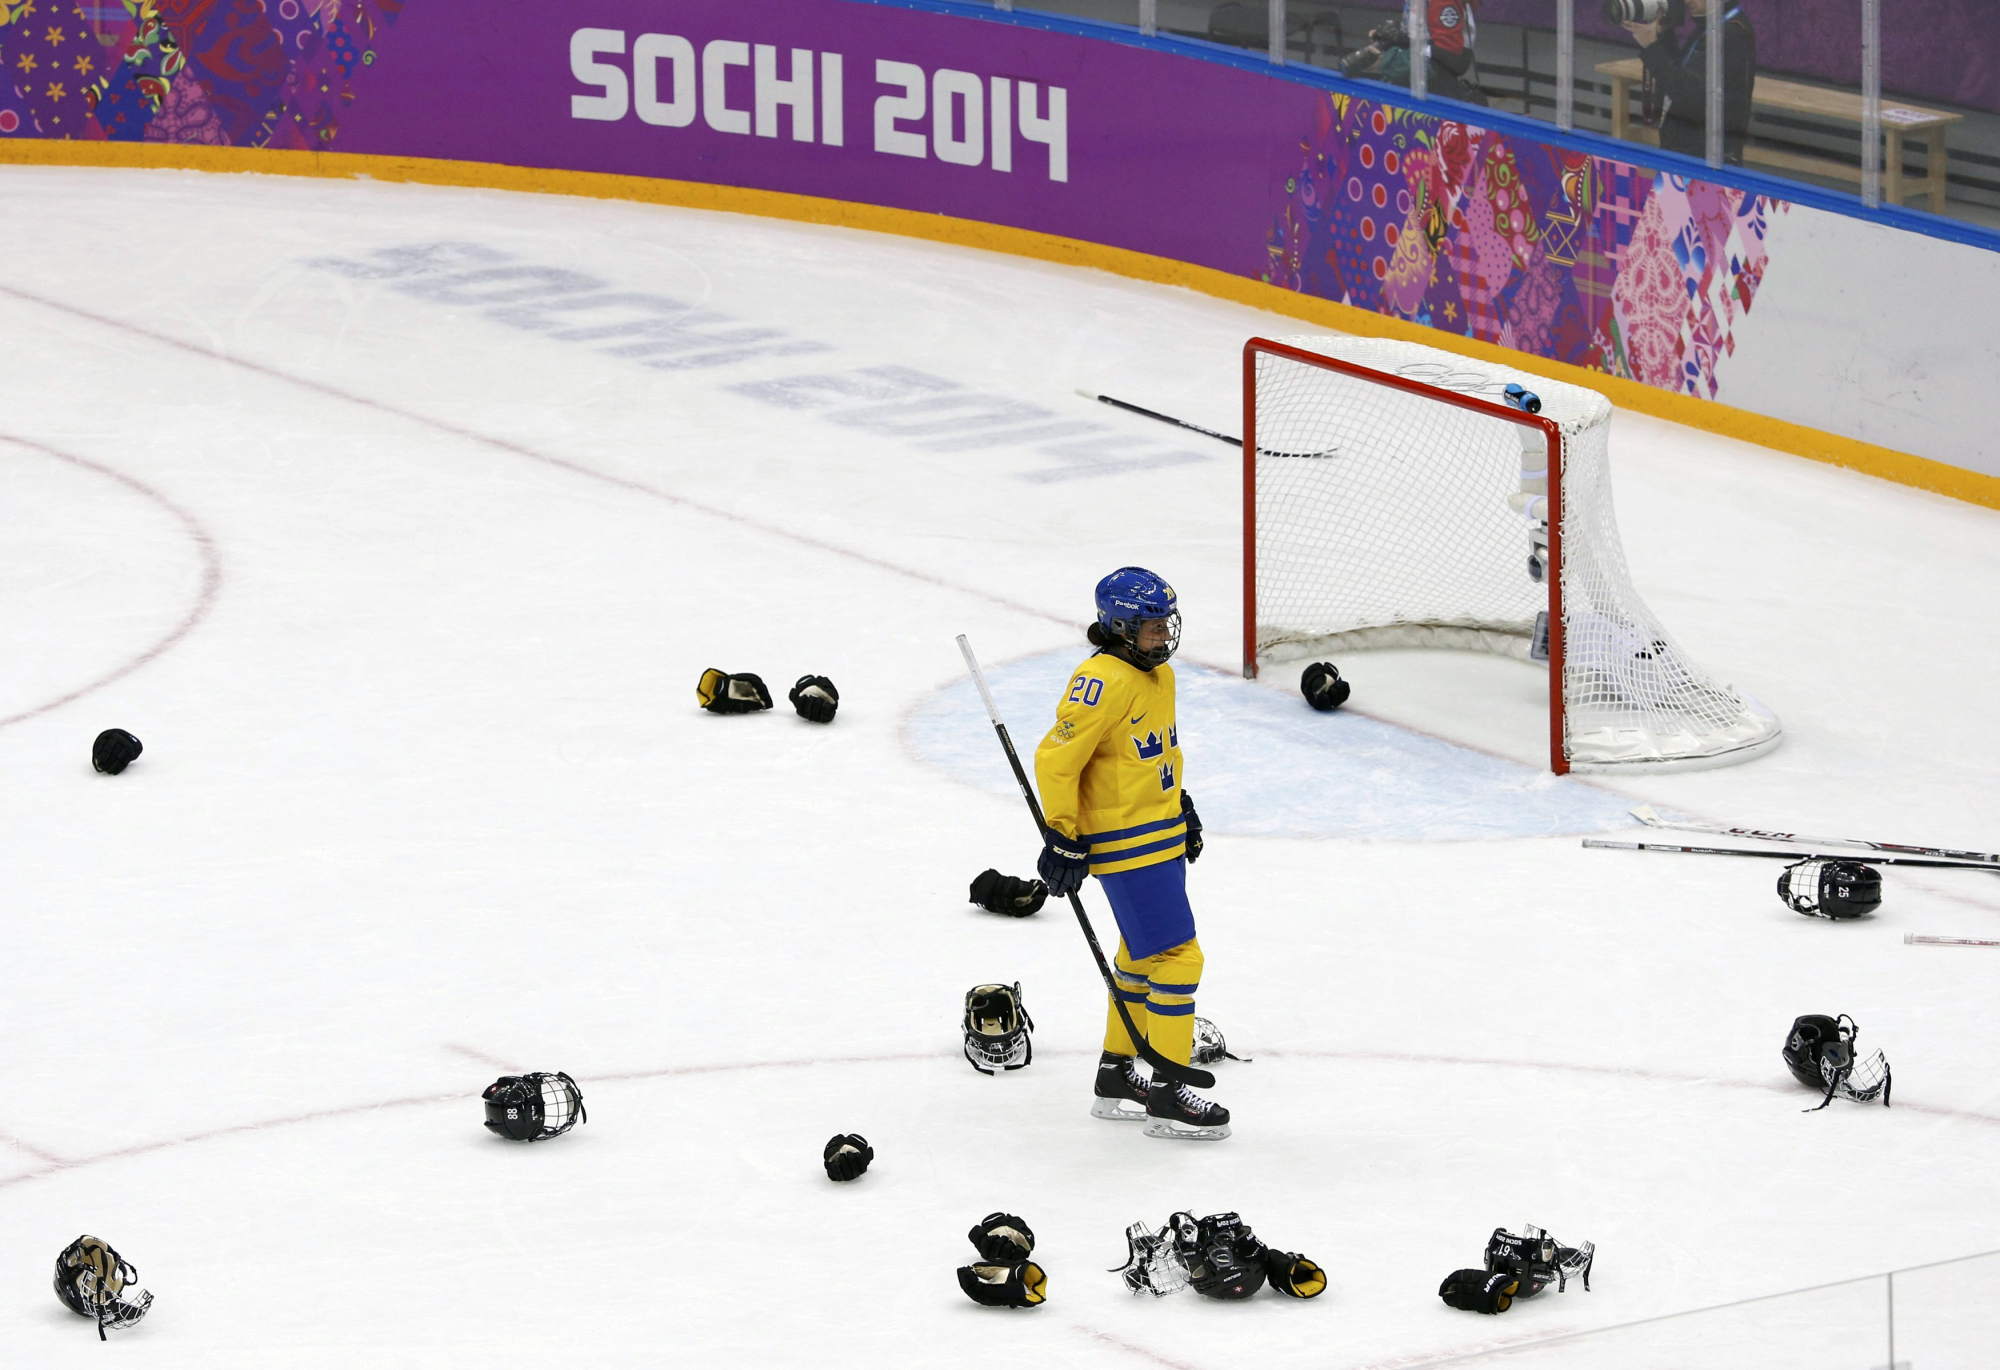 Sweden's Fanny Rask skates through the helmets and gloves of Switzerland's celebrating players at the end of their women's ice hockey bronze medal game.